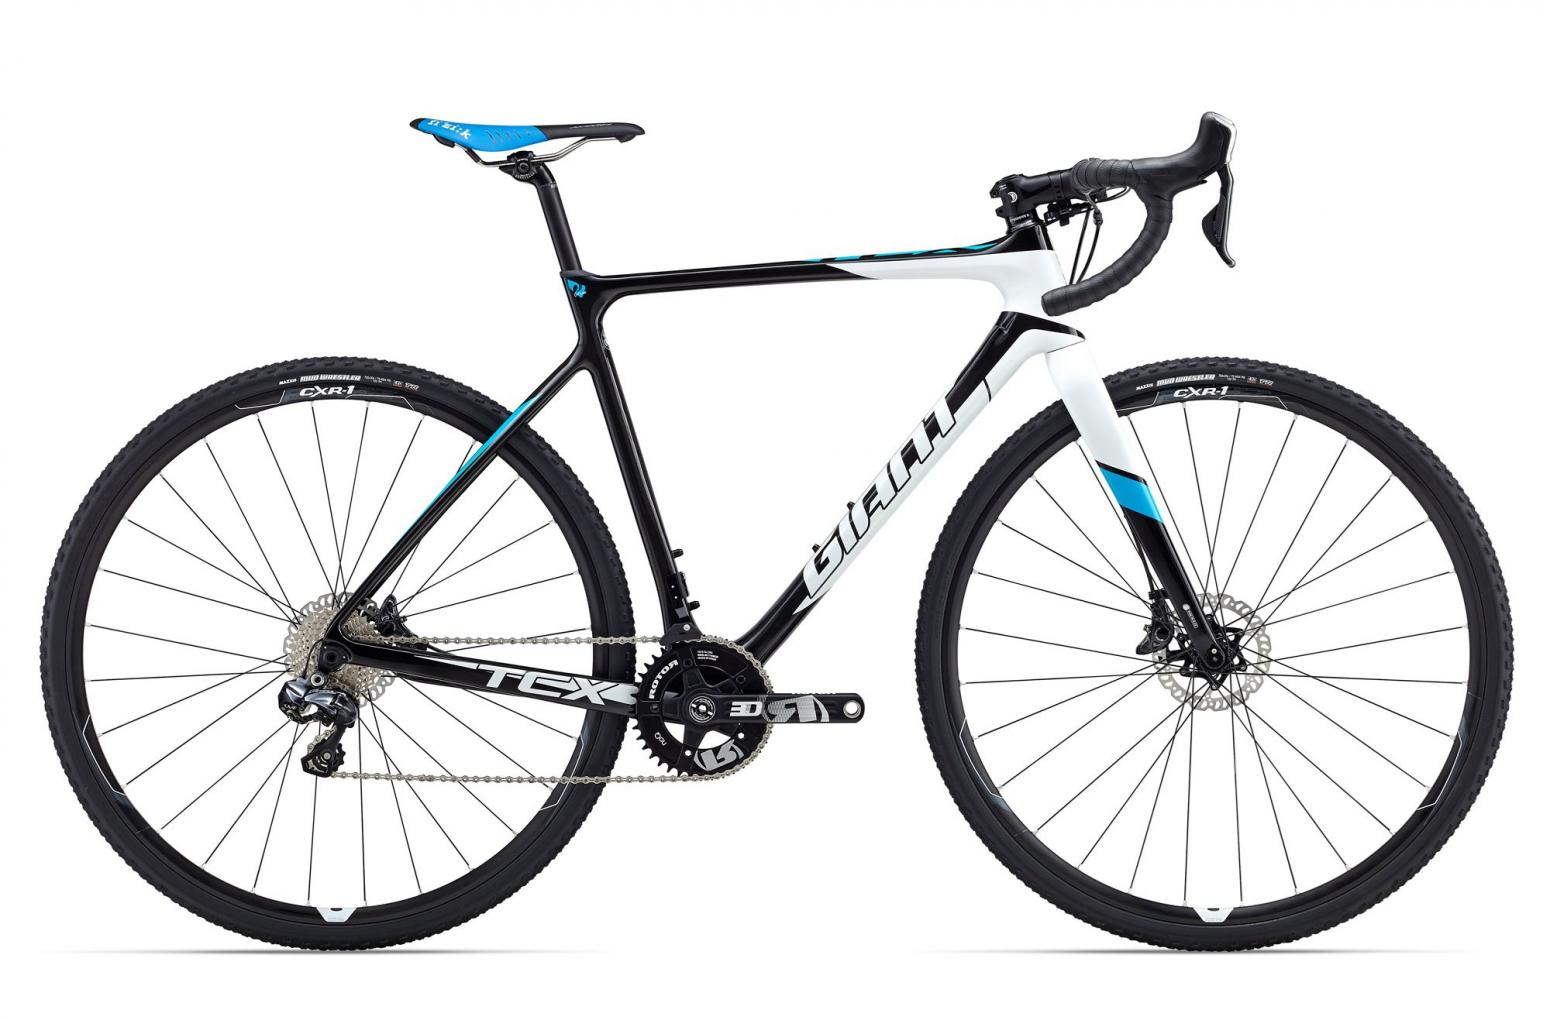 Giant Rennrad TCX Advanced Pro 1 LTD 2017